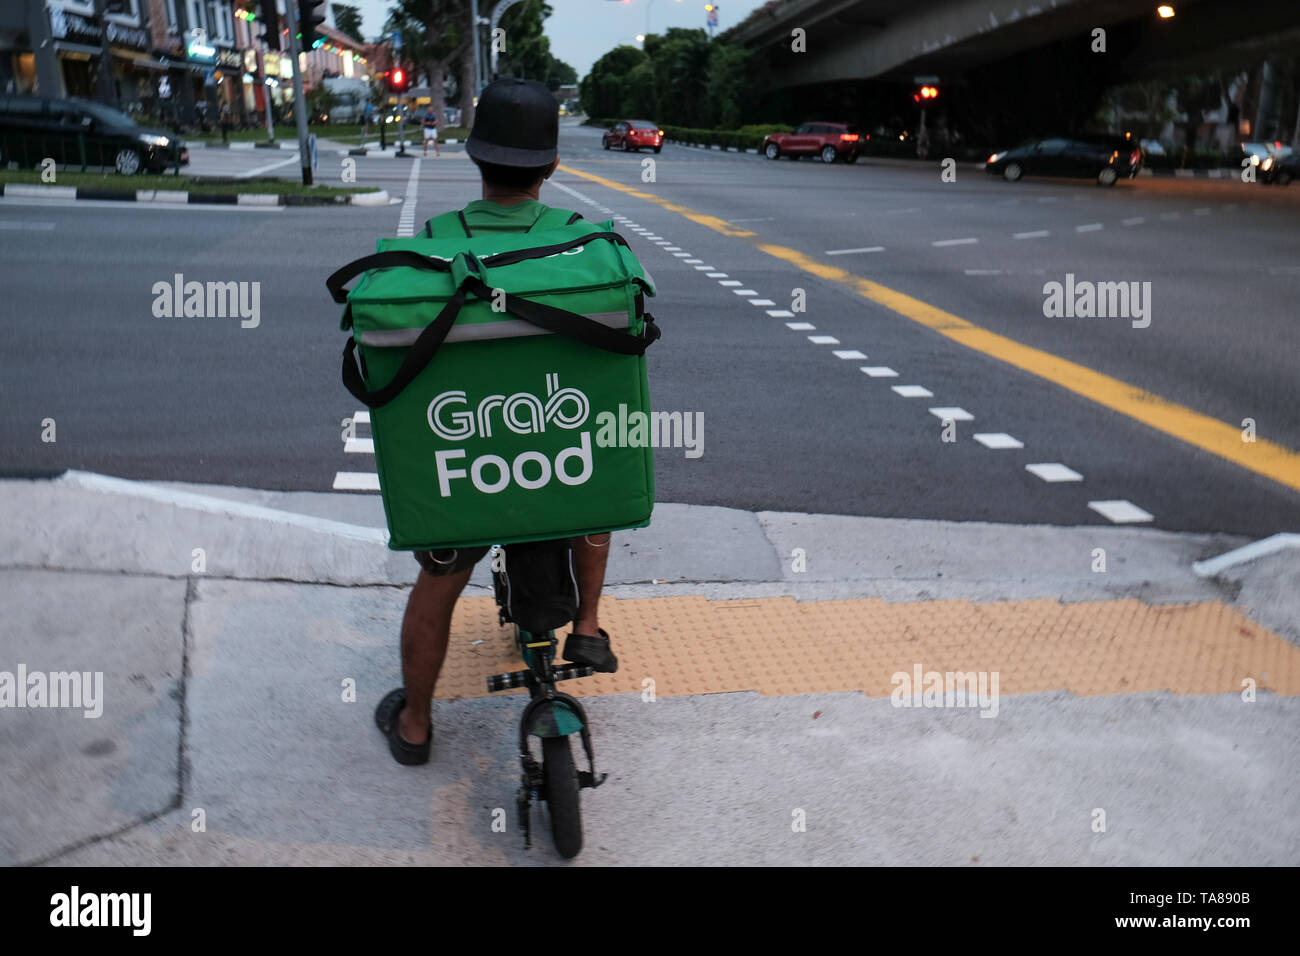 A Grab Food cycle rider on the streets of Singapore delivering food waiting at a crossing of a busy road as a rain storm moves in for a dramatic image. Stock Photo